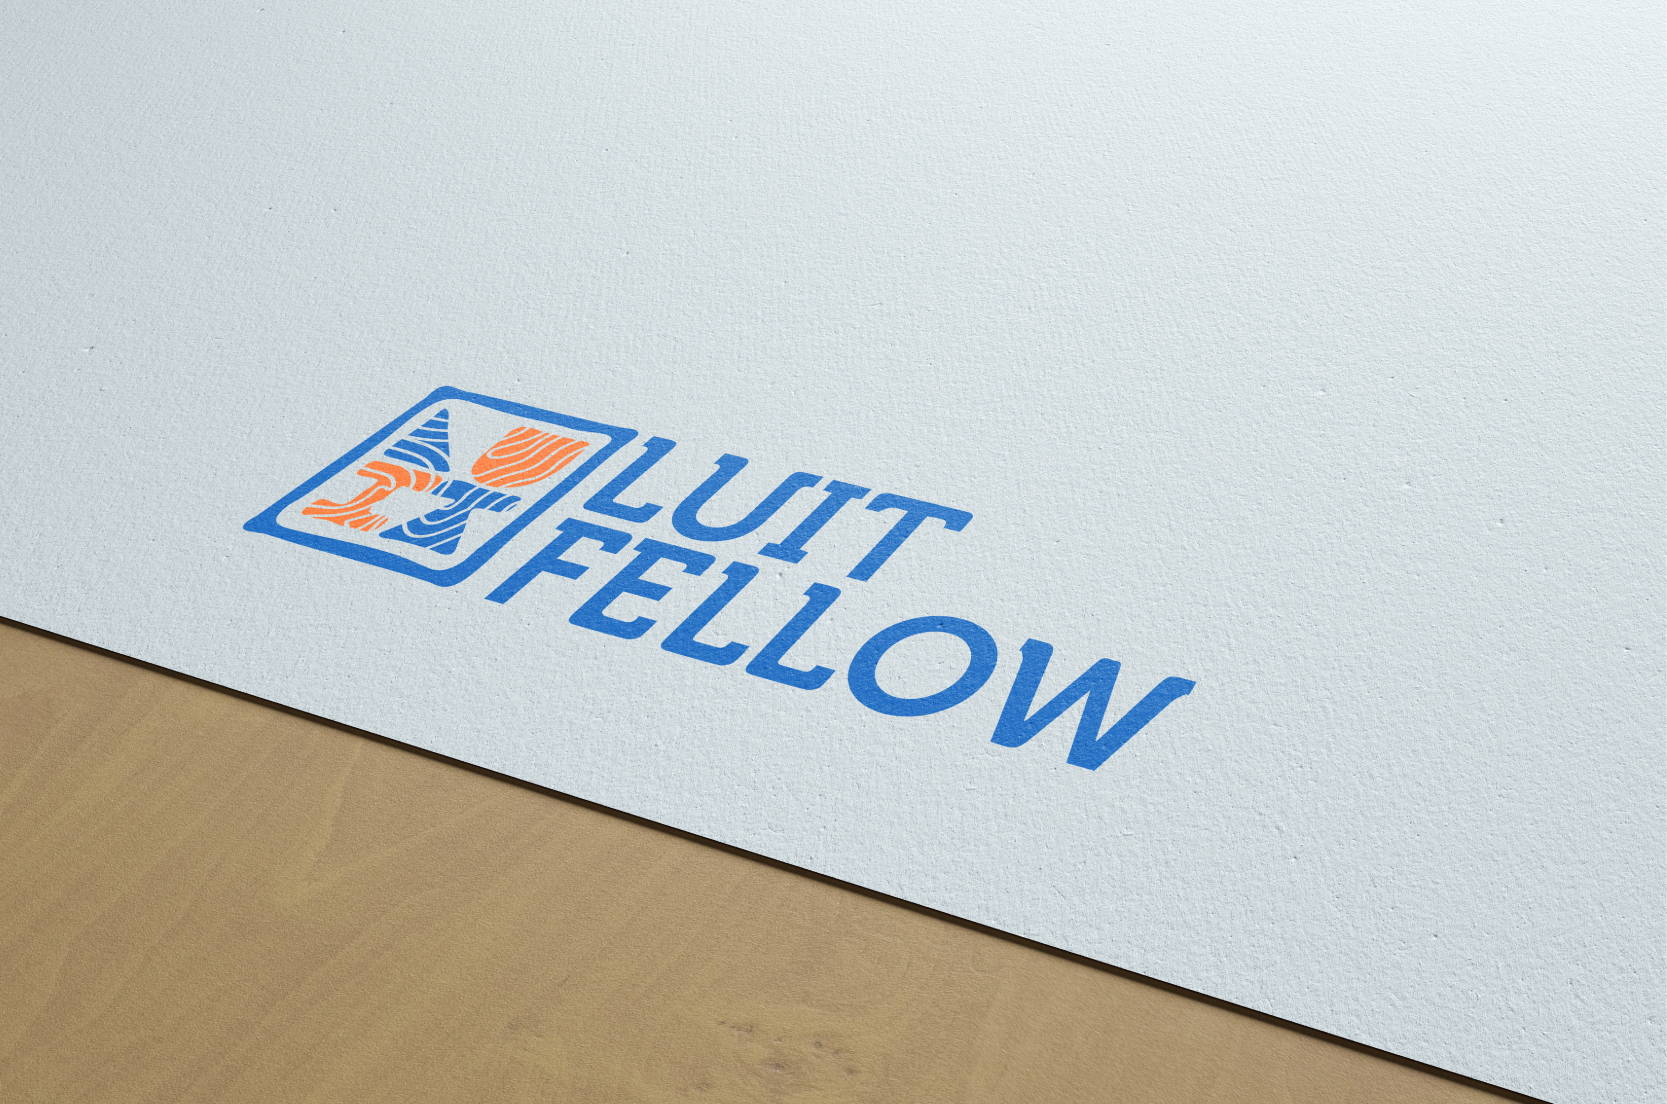 Luit Fellow_Branding_Elephant Design 2.jpg